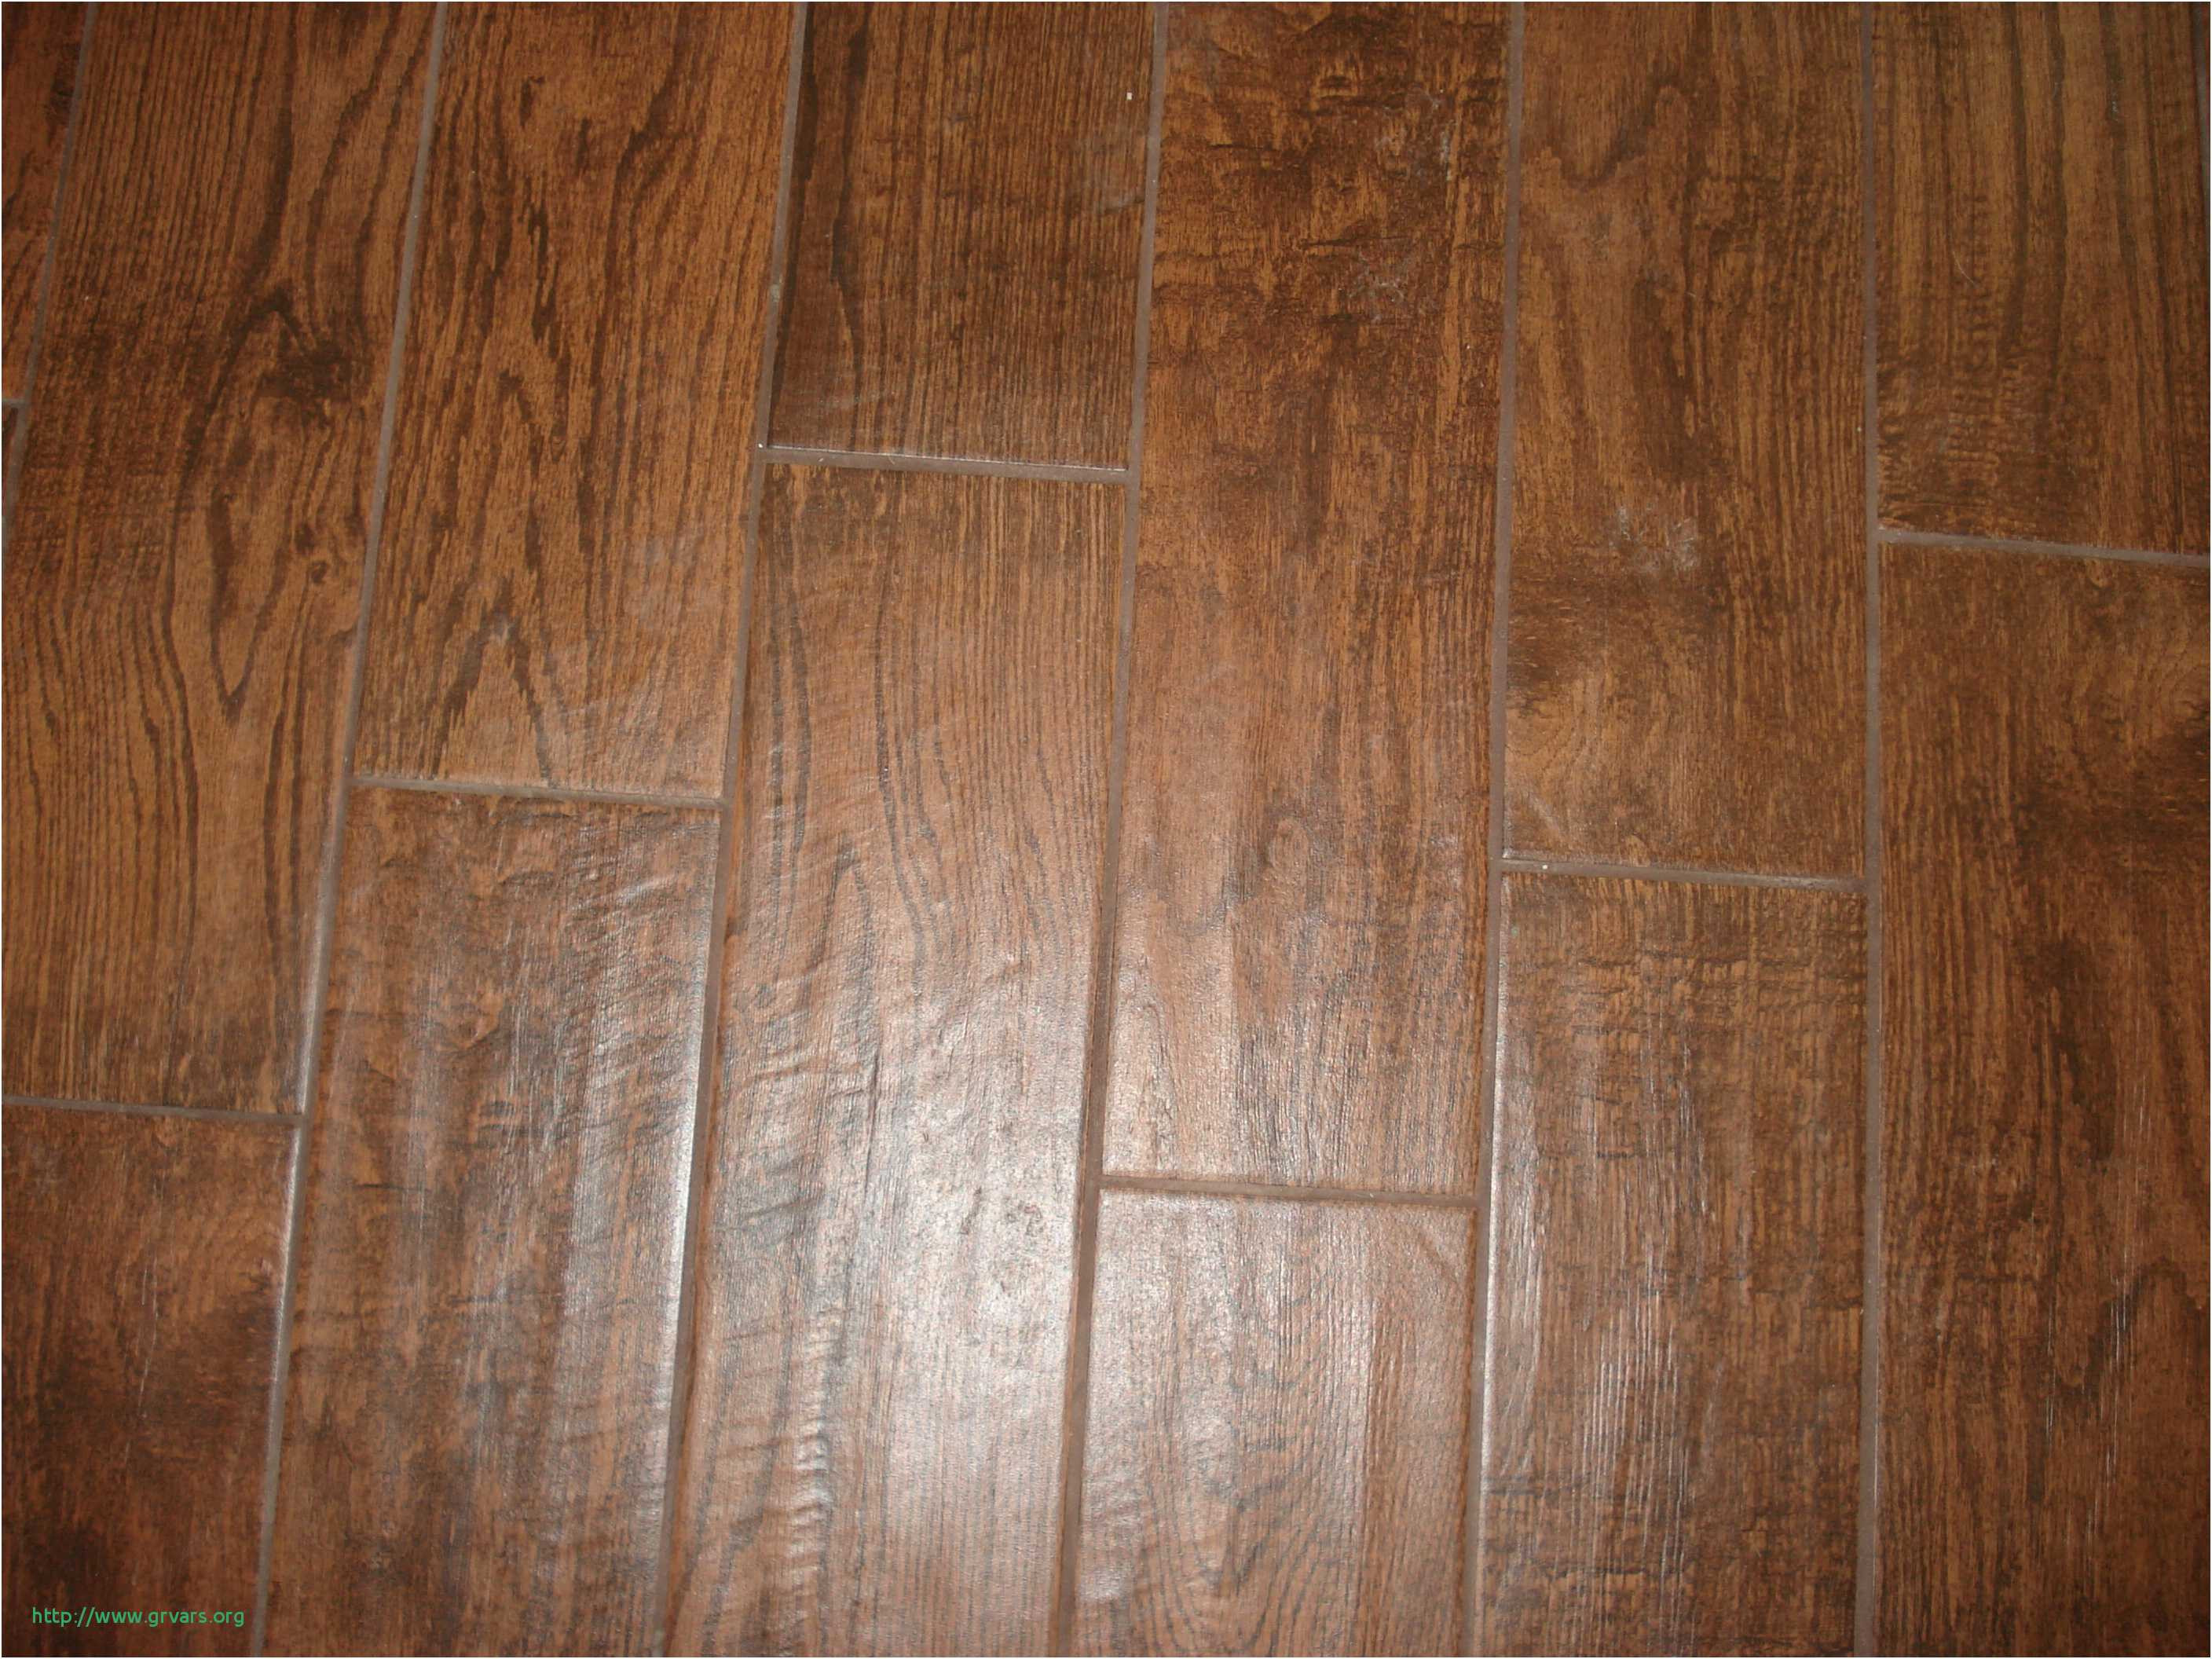 Hardwood Flooring Calgary Price Of 16 A‰lagant Hardwood Flooring Depot Calgary Ideas Blog In Hardwood Flooring Depot Calgary Unique Home Depot Hardwood Flooring Installation Cost Awesome Installing